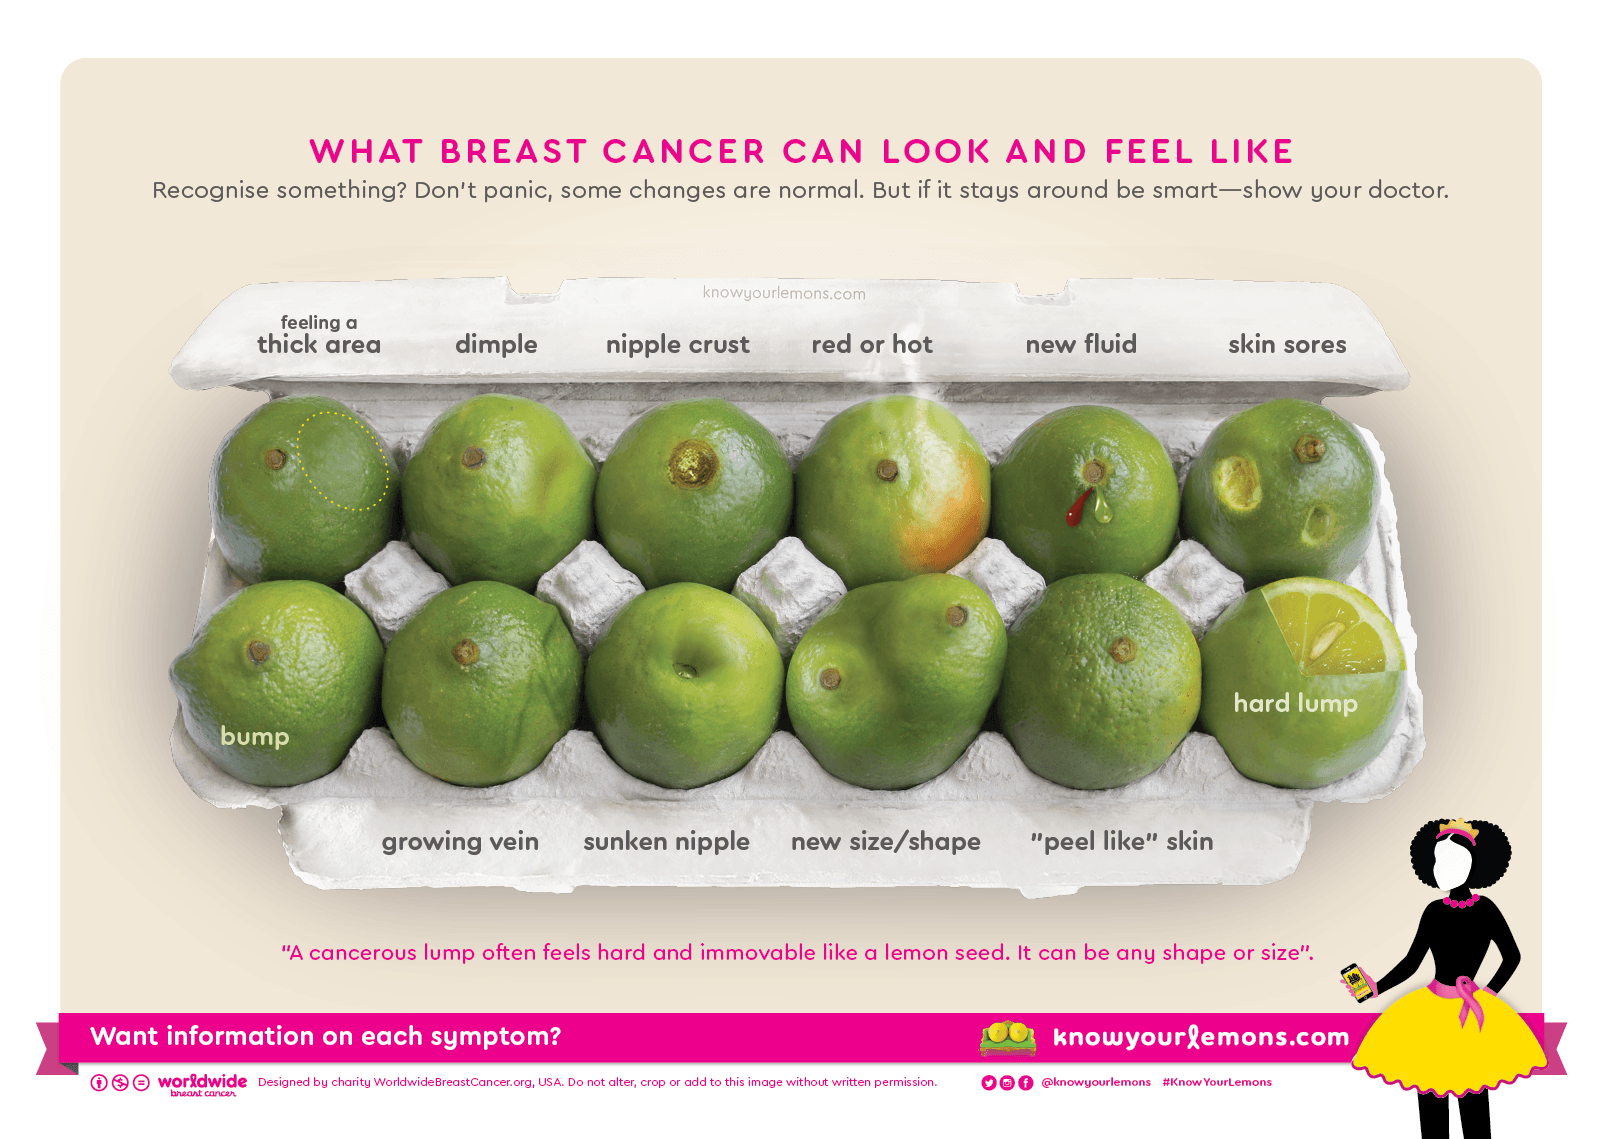 12 signs of breast cancer using lemons (Nigerian version)